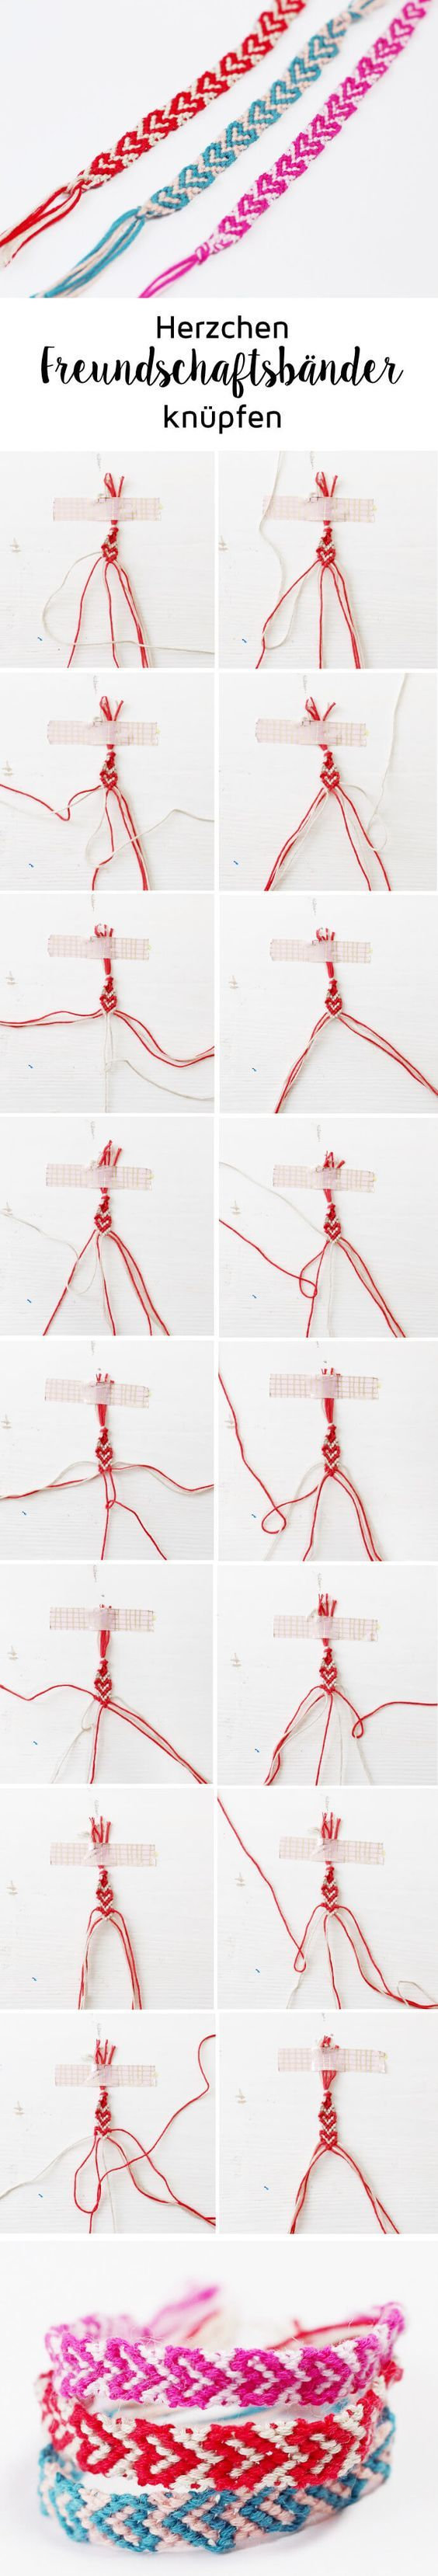 Making Friendship Bracelets with Hearts: Great Gift Idea for the Valentine ...